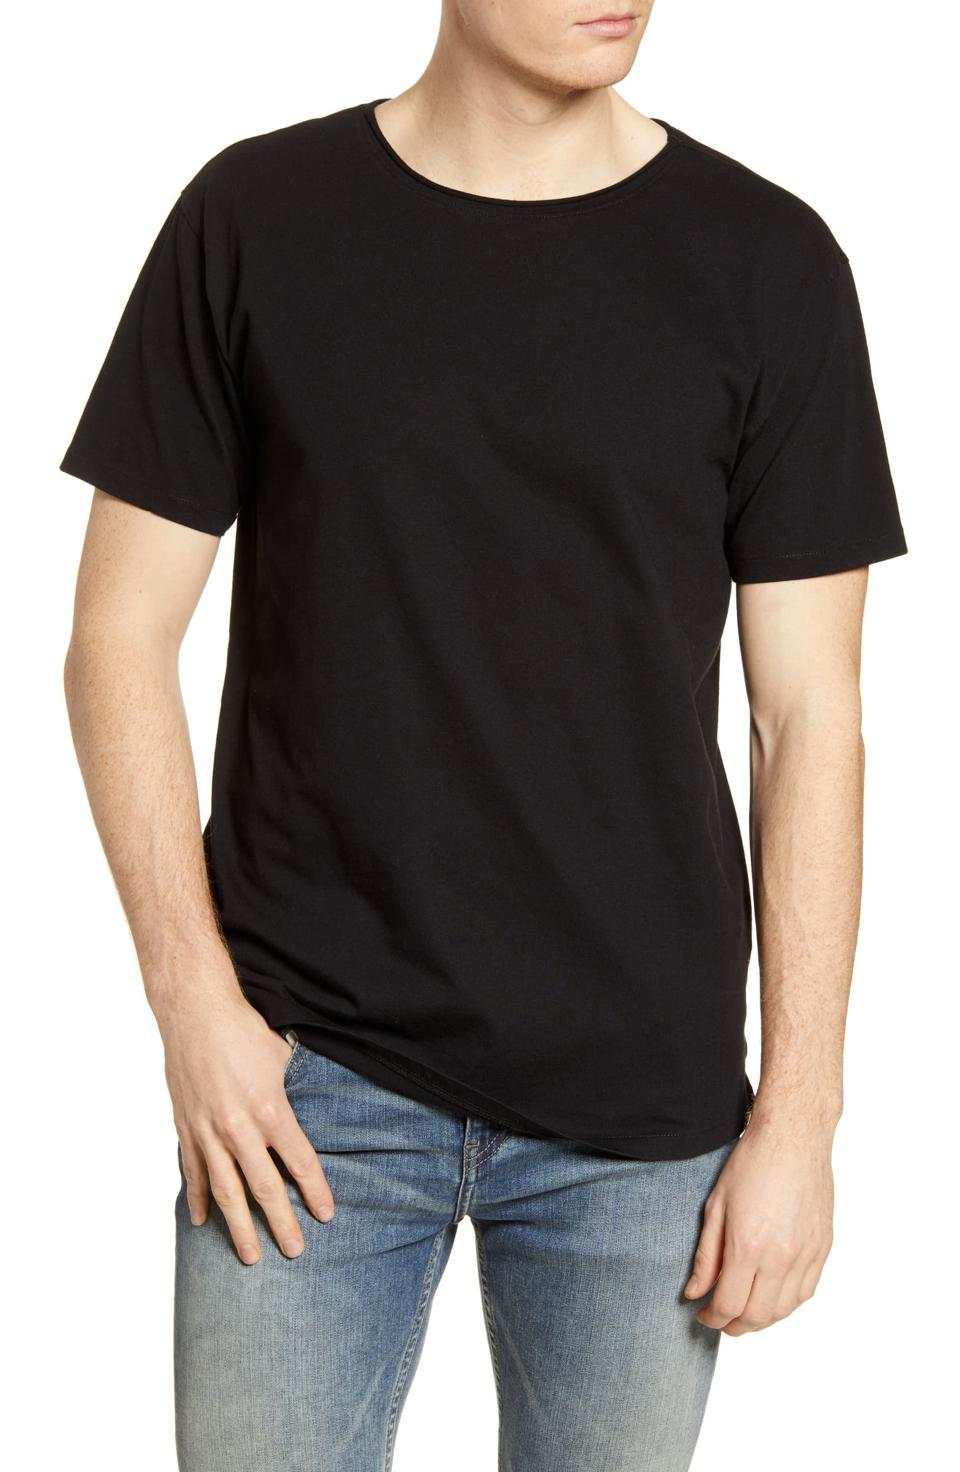 12 Of The Best Black T Shirts For Men